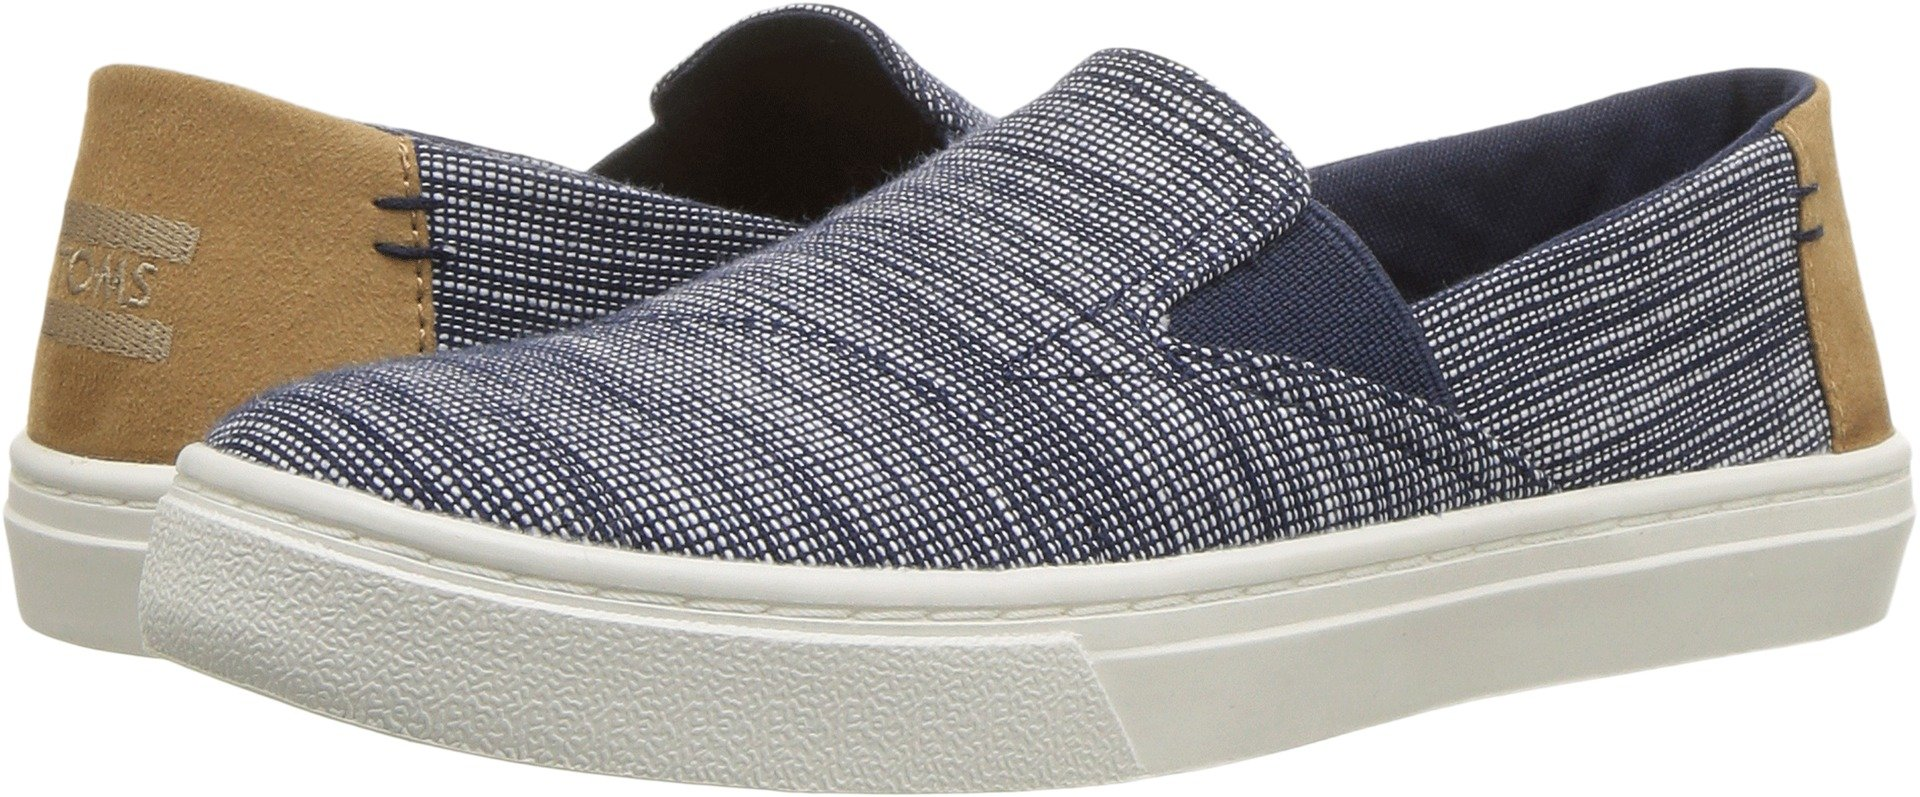 TOMS Kids Unisex Luca (Little Kid/Big Kid) Navy Striped Chambray 13 M US Little Kid by TOMS Kids (Image #1)